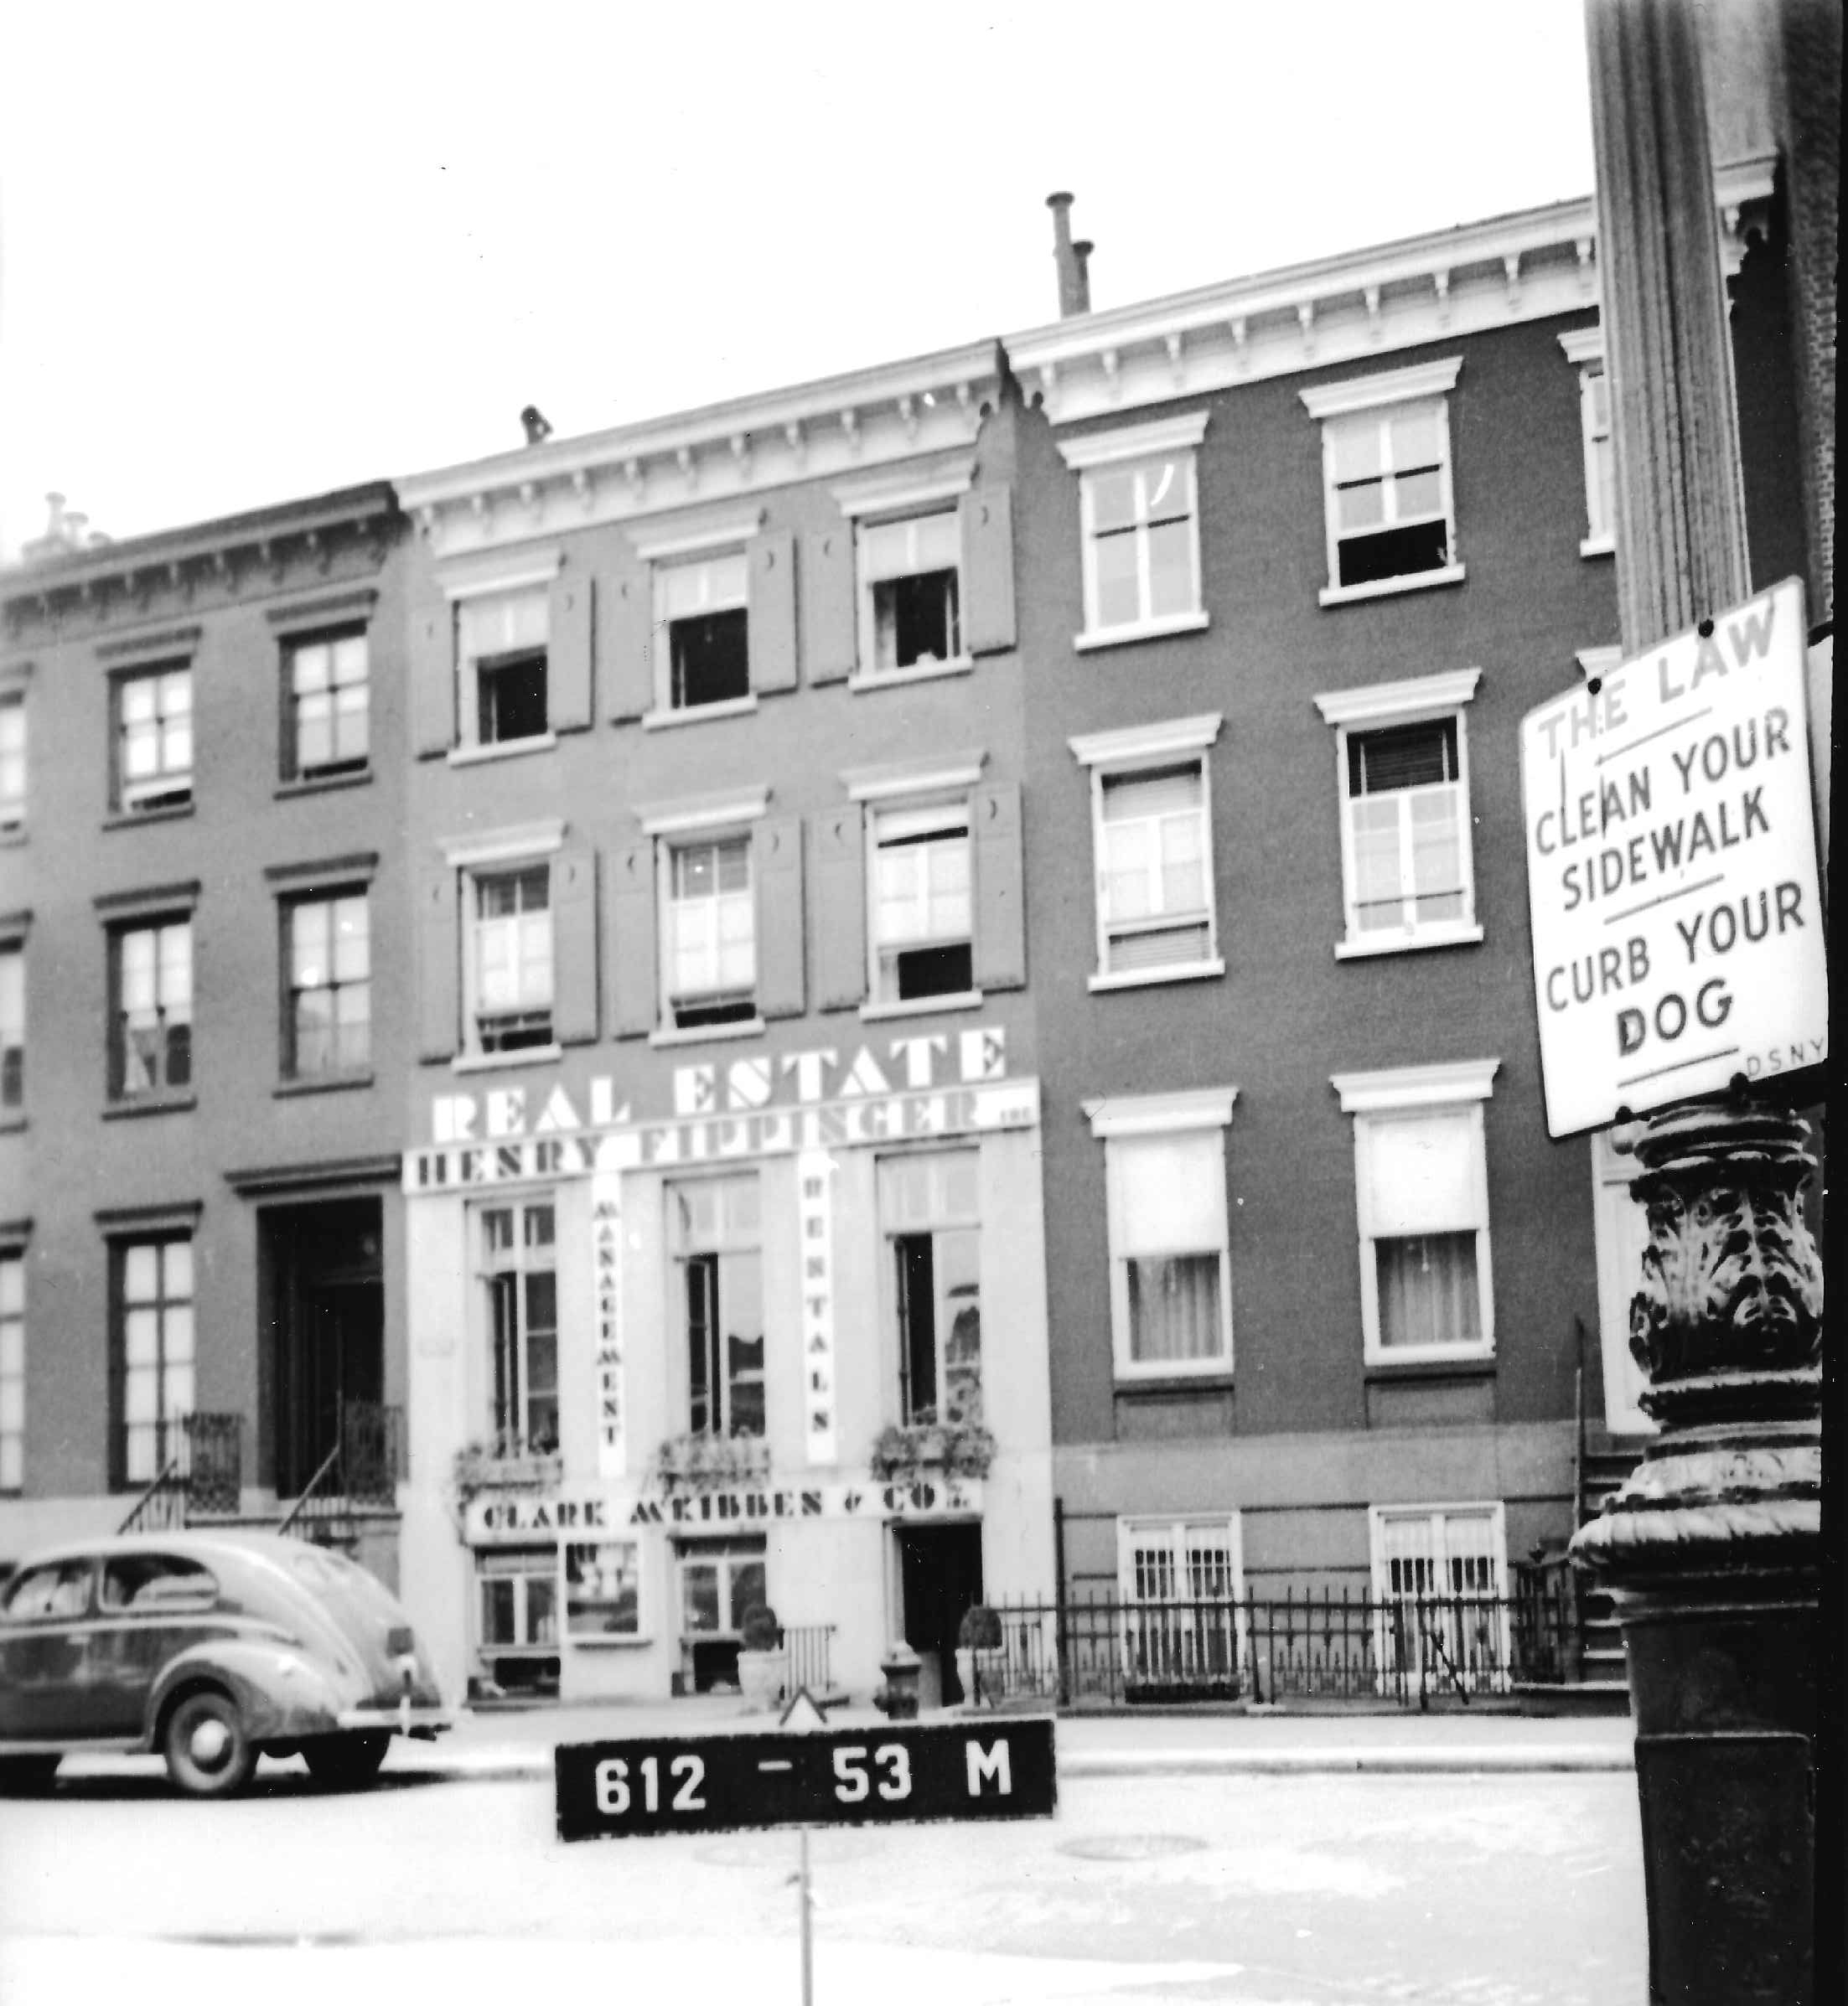 8 Perry Street, 1940